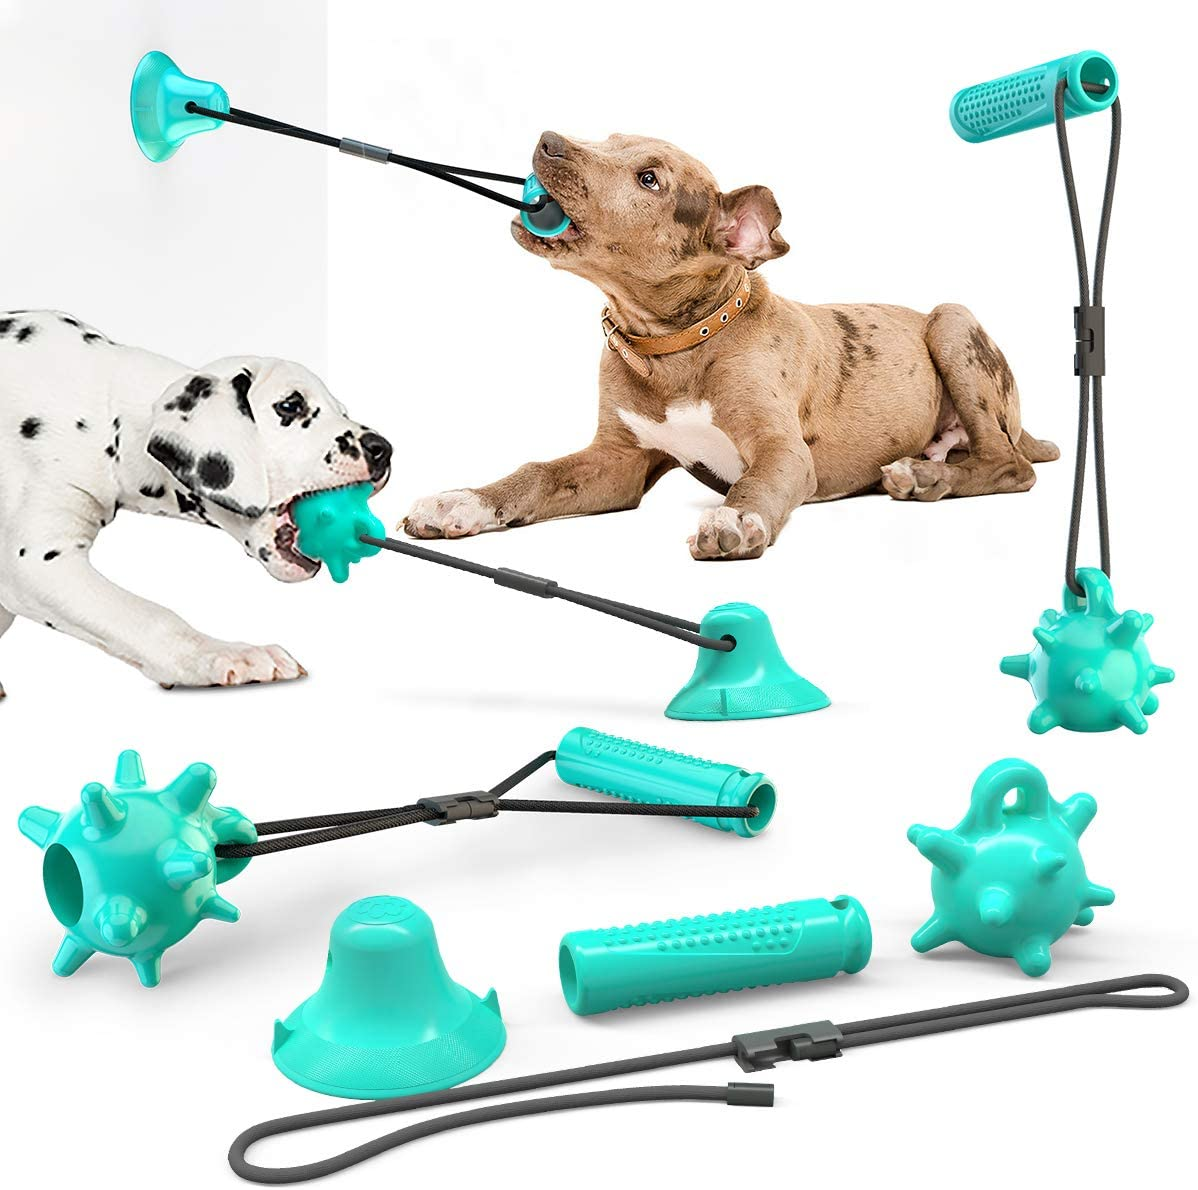 USWT Dog Rope Ball Stick with Suction Cup, Dog Toy Set, Four-Piece Dog Rope Toy Set Puppy Chew Tug Toys